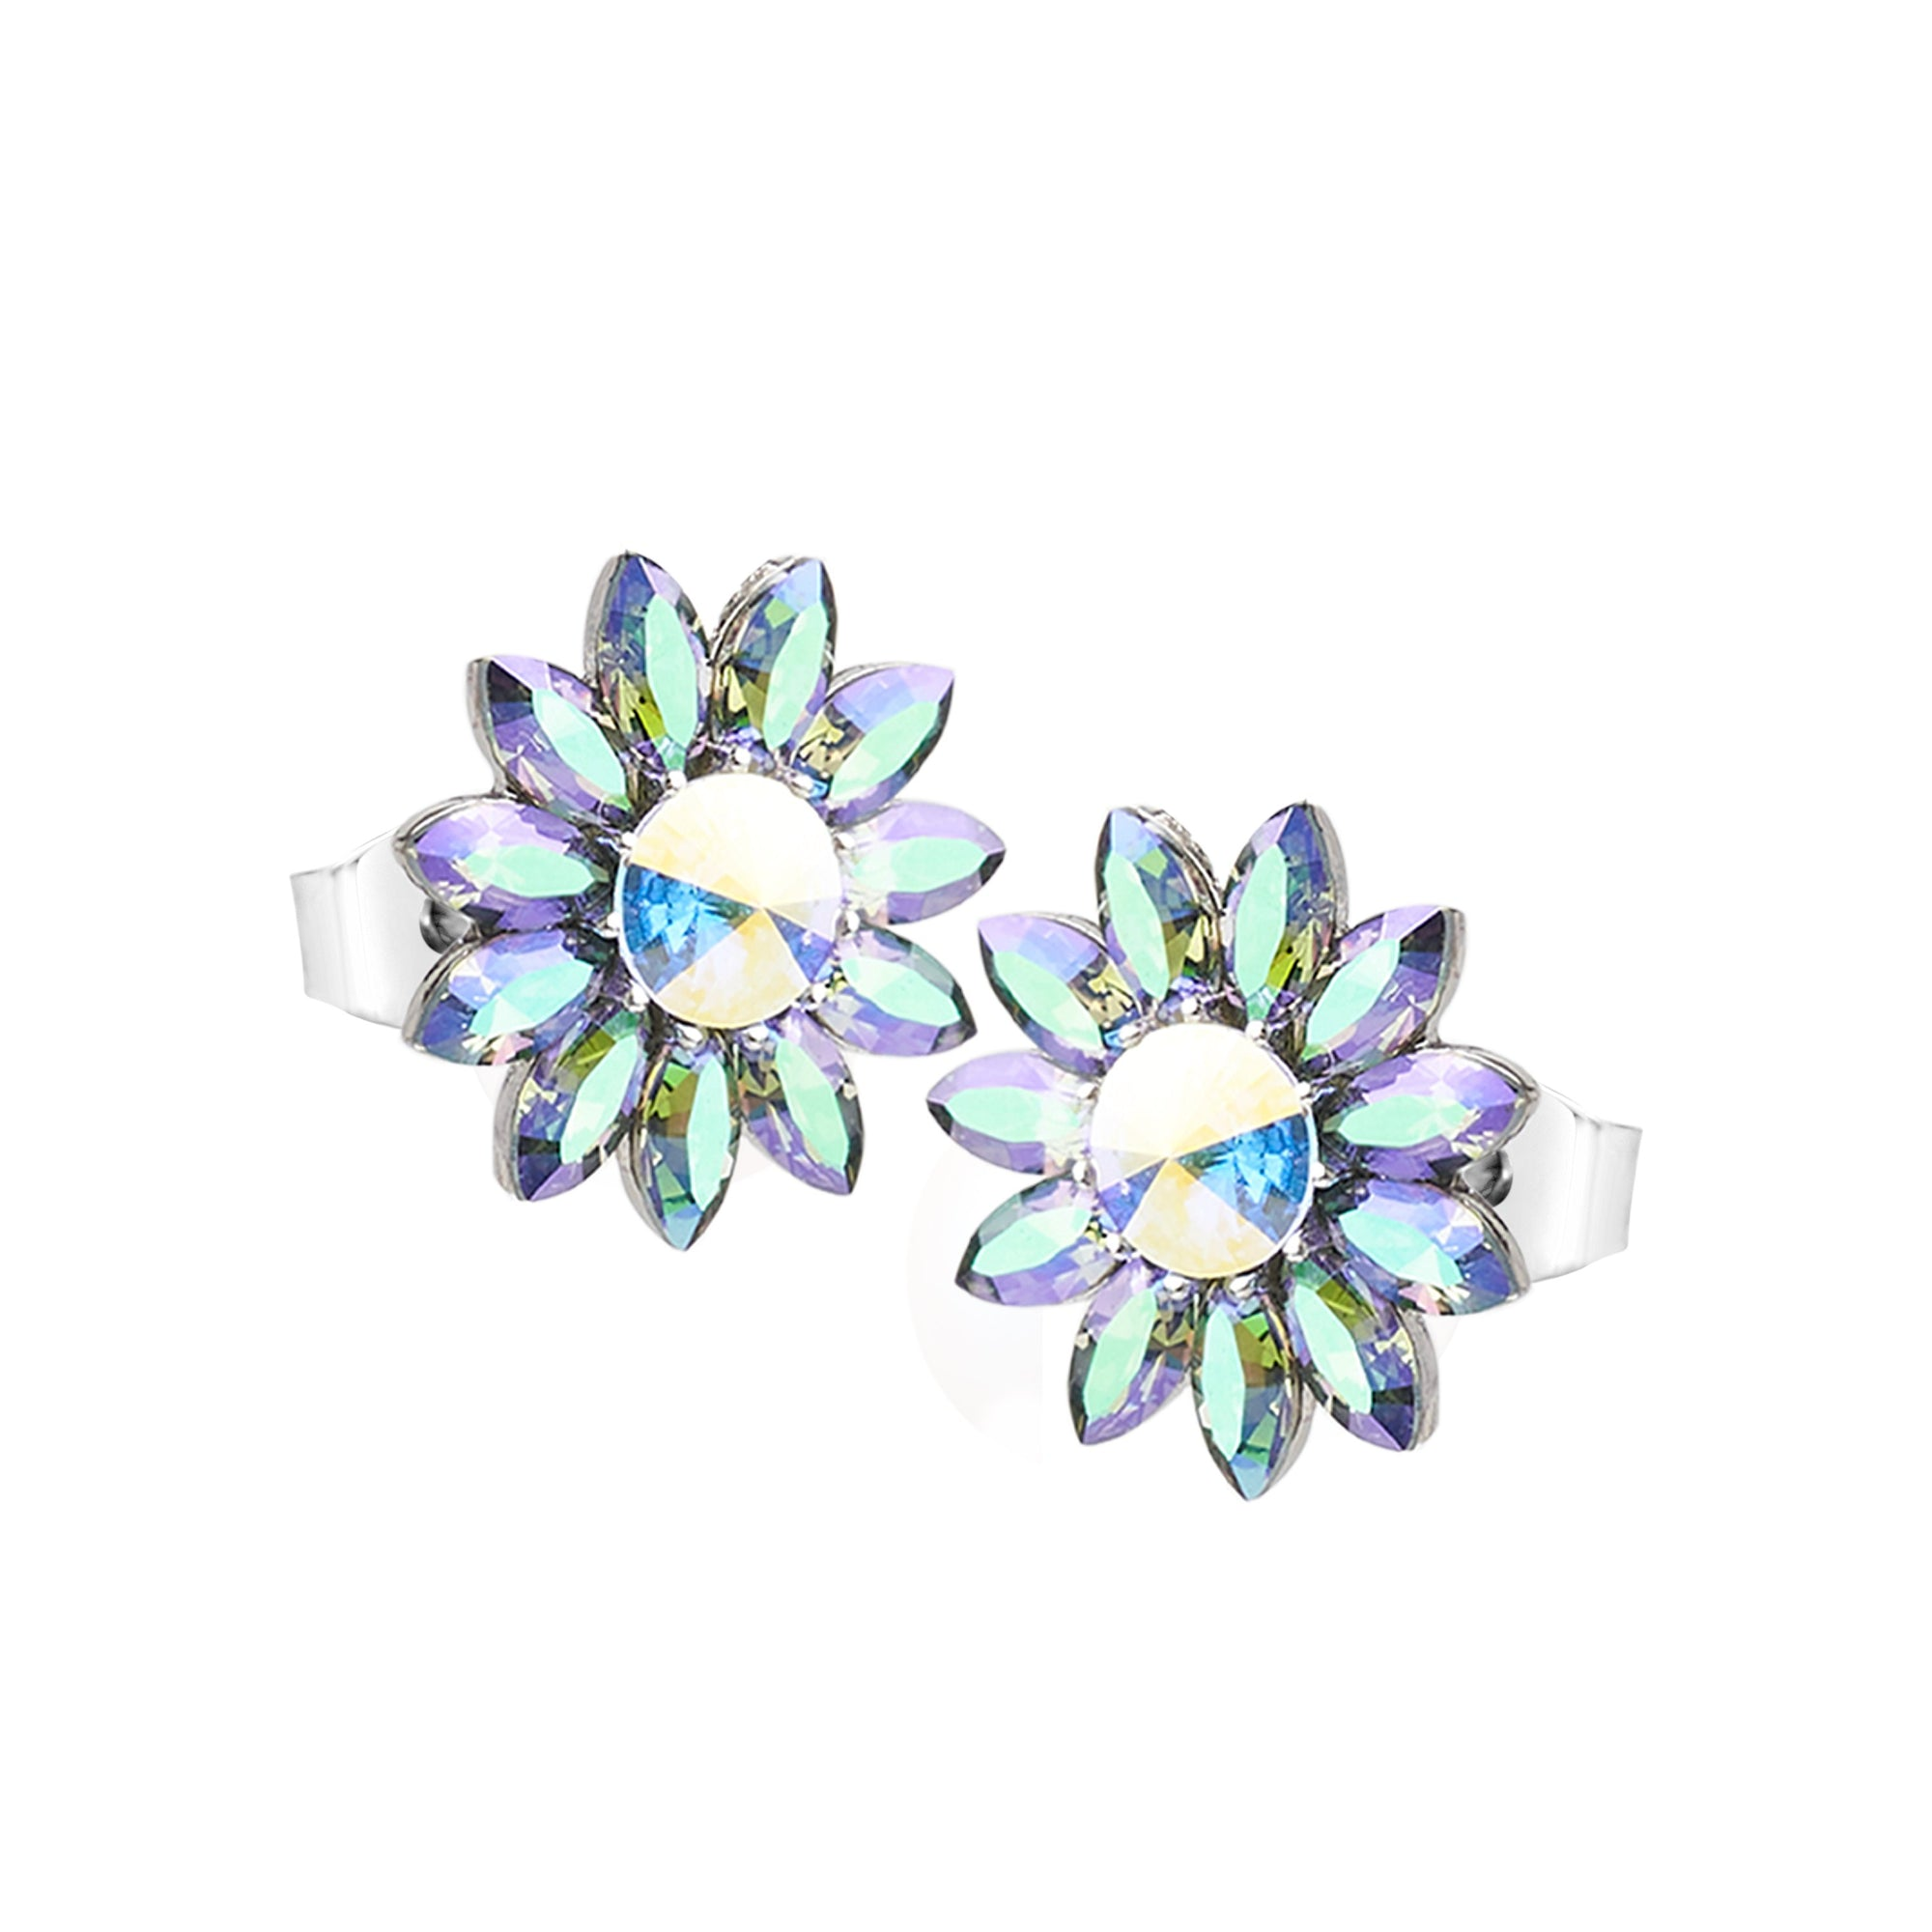 BLOOM HARMONY FLOWER EARRING PARADISE SHINE